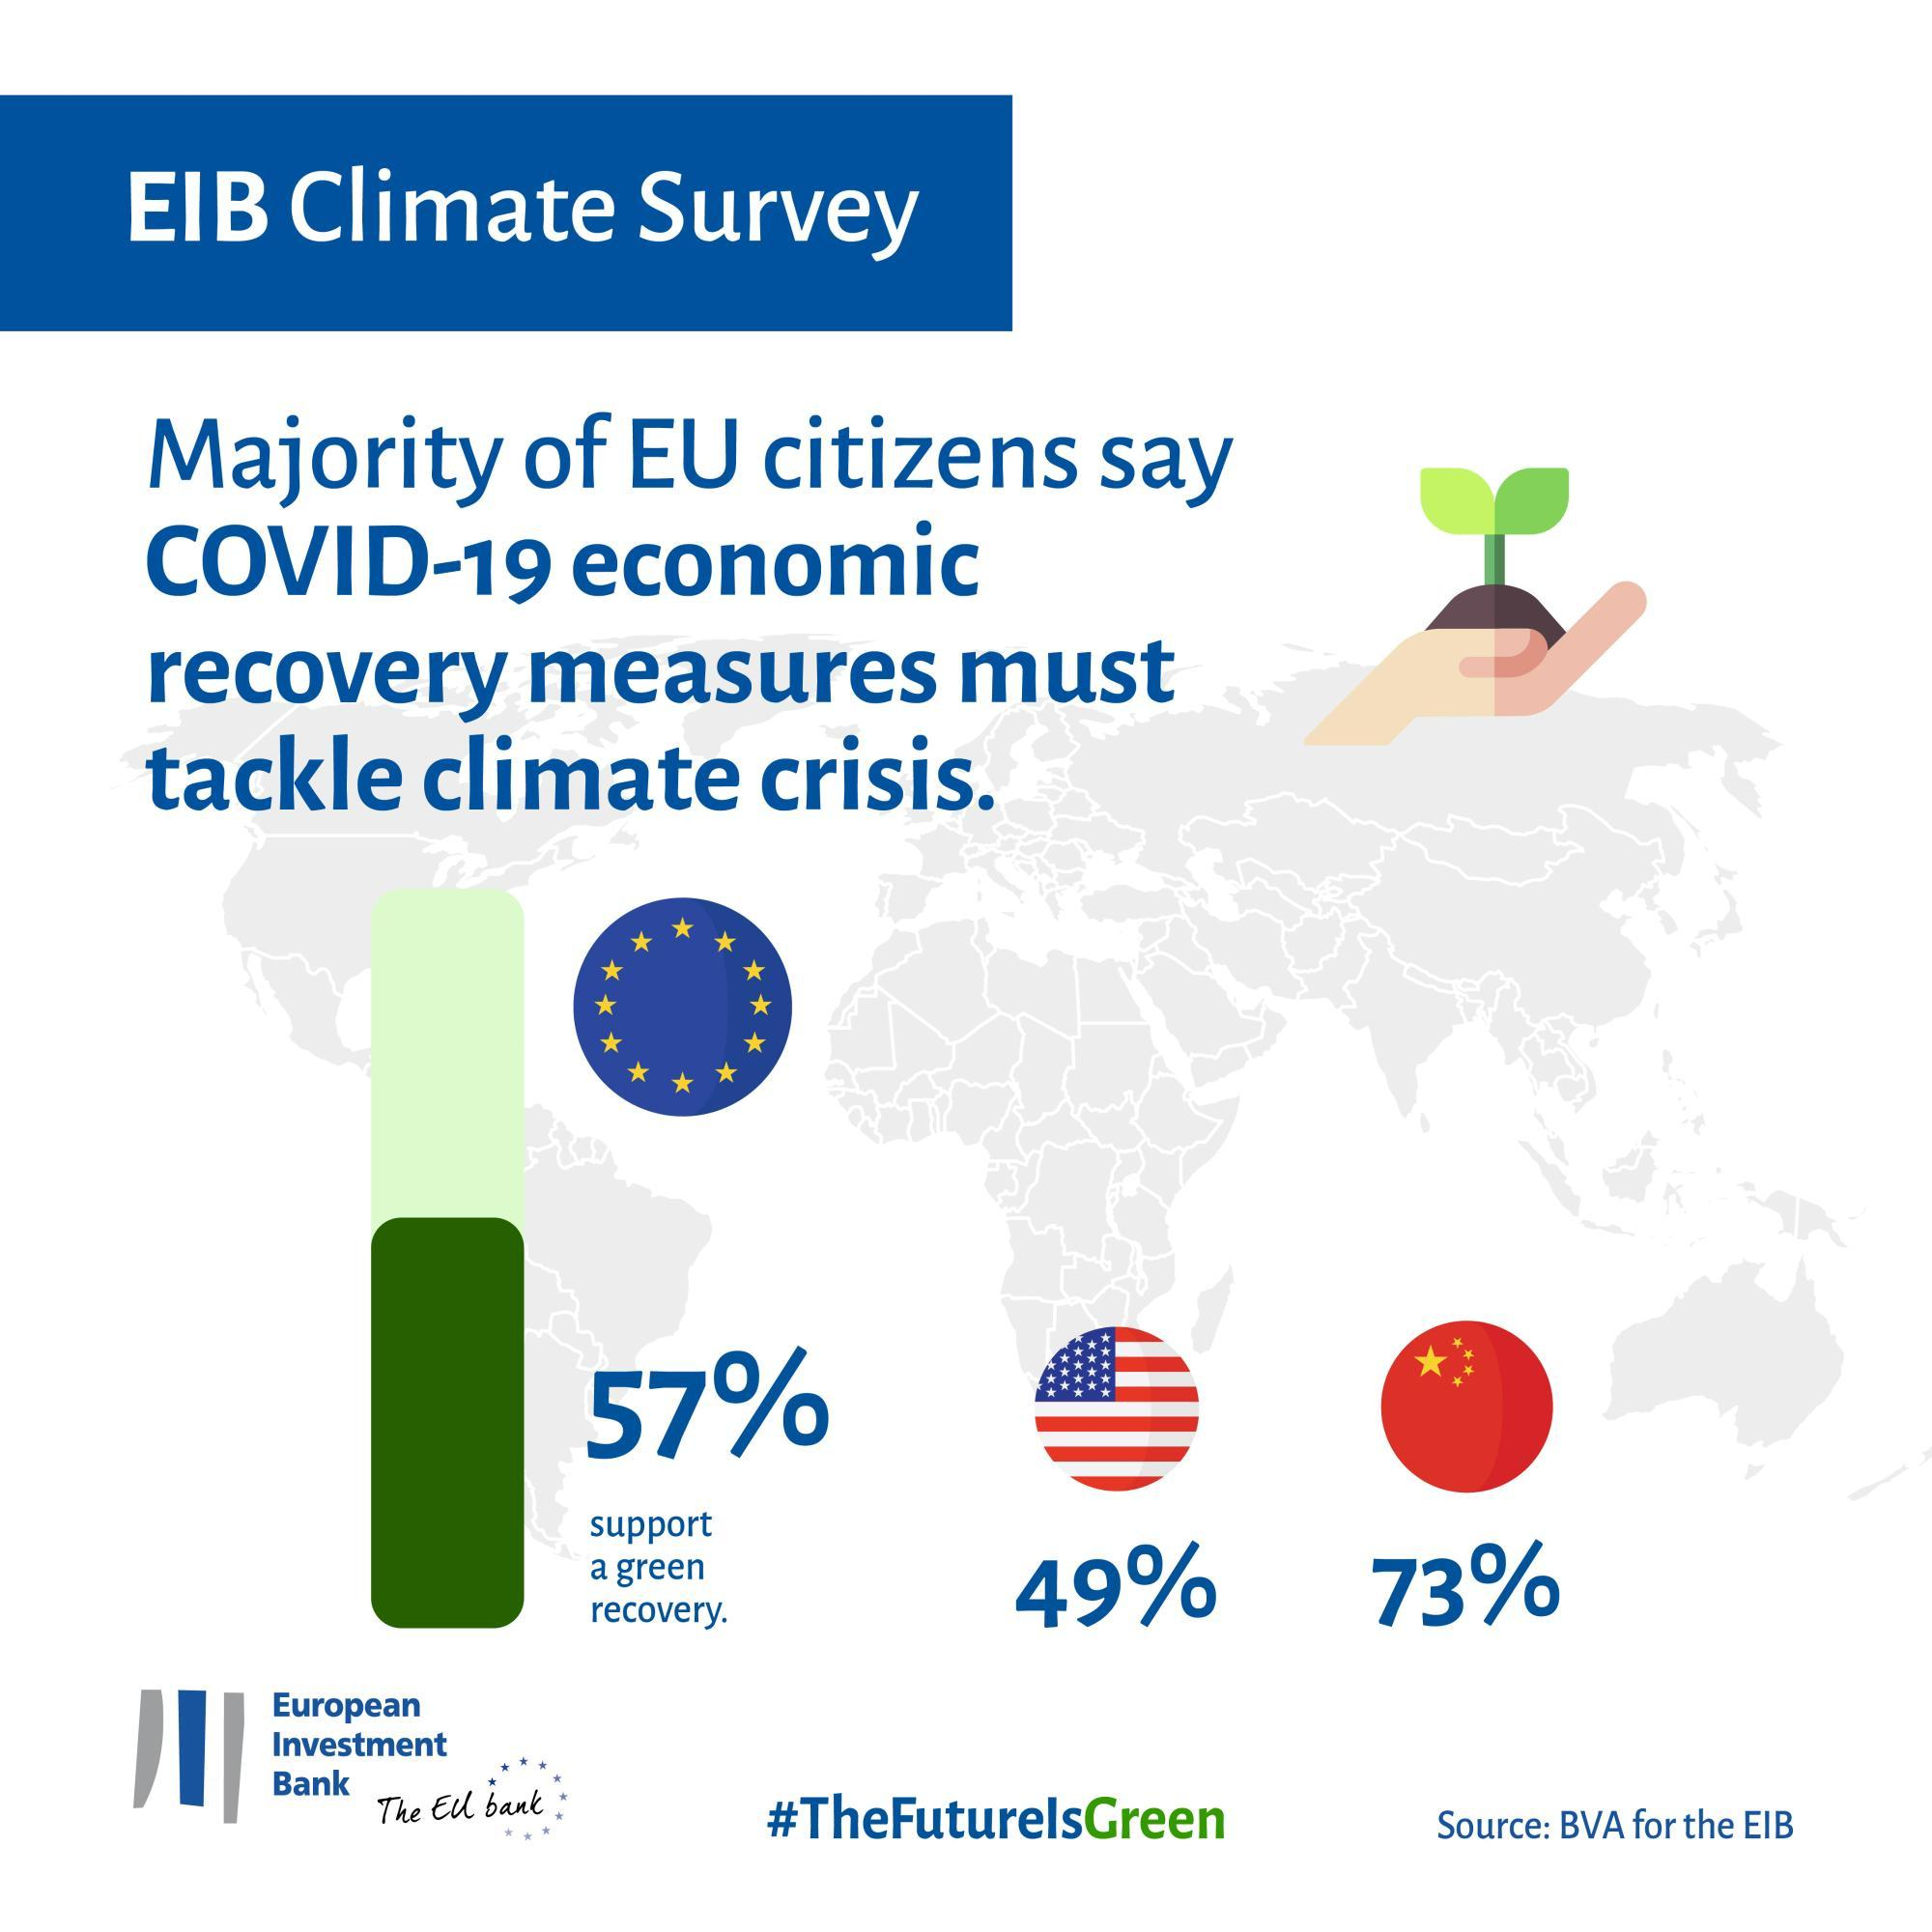 Majority of EU citizens say COVID-19 economic recovery measures must tackle climate crisis